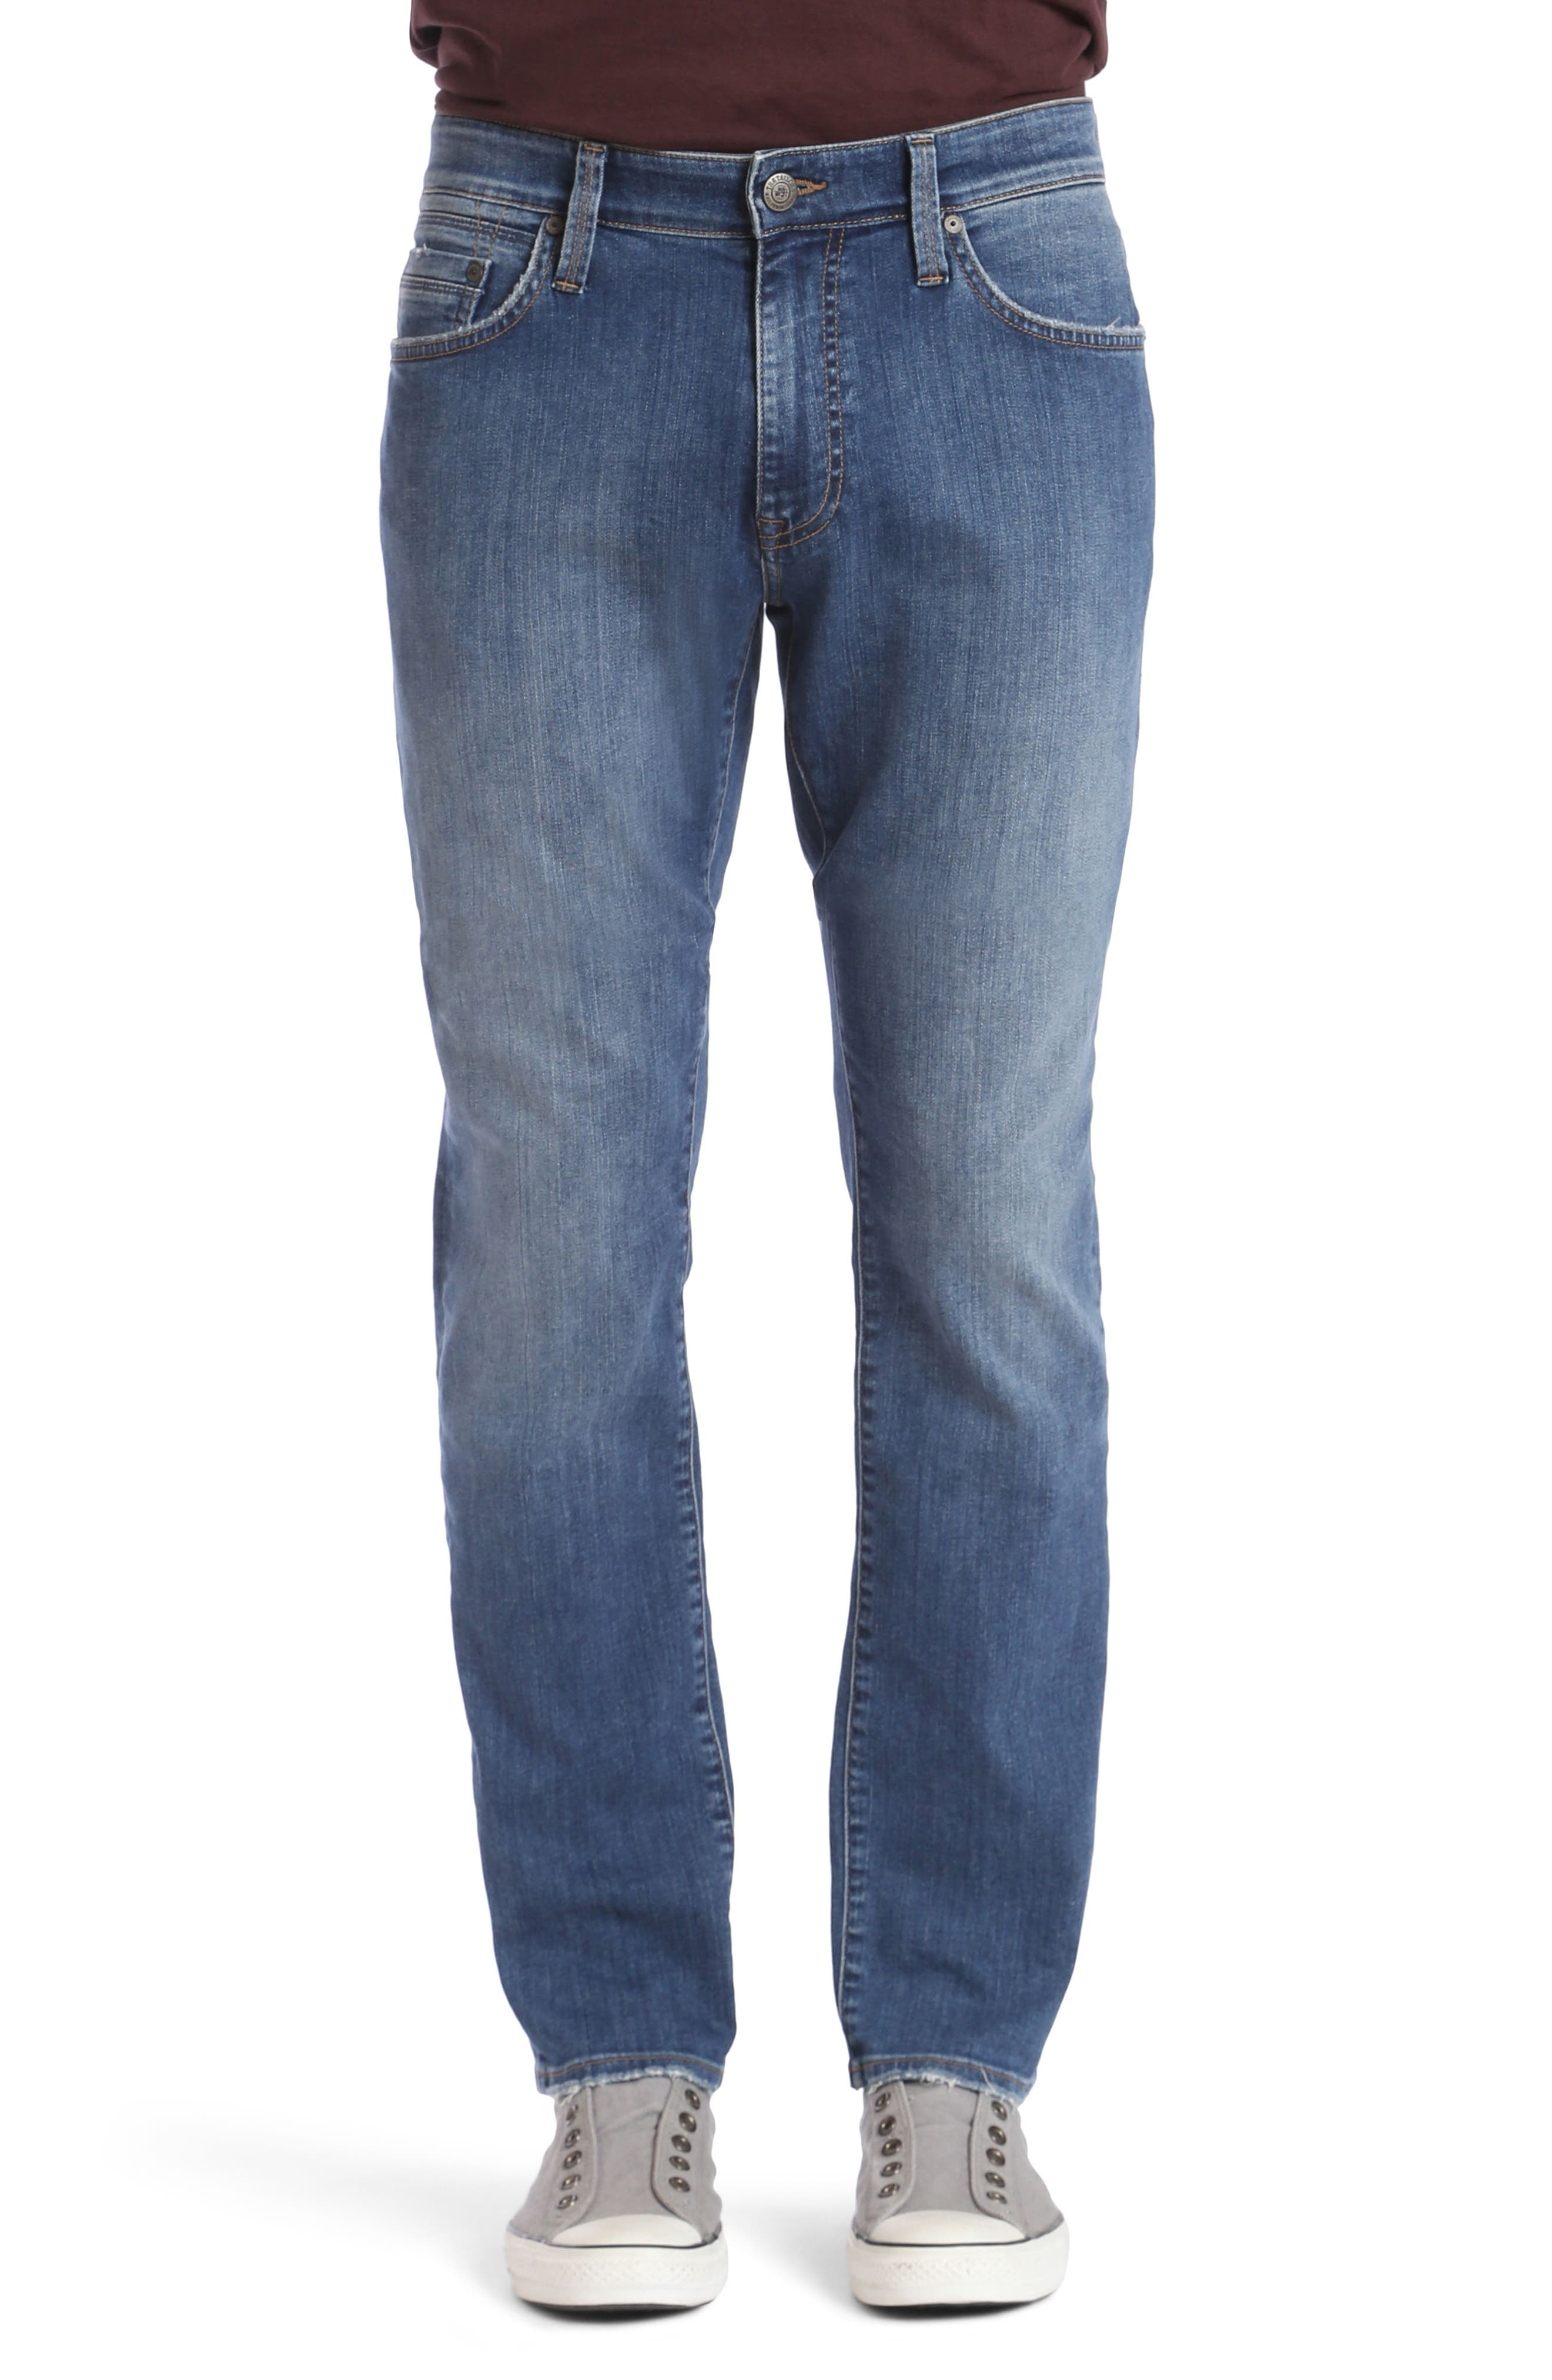 Matt Relaxed Fit Jeans,                         Main,                         color, Mid Clean Comfort